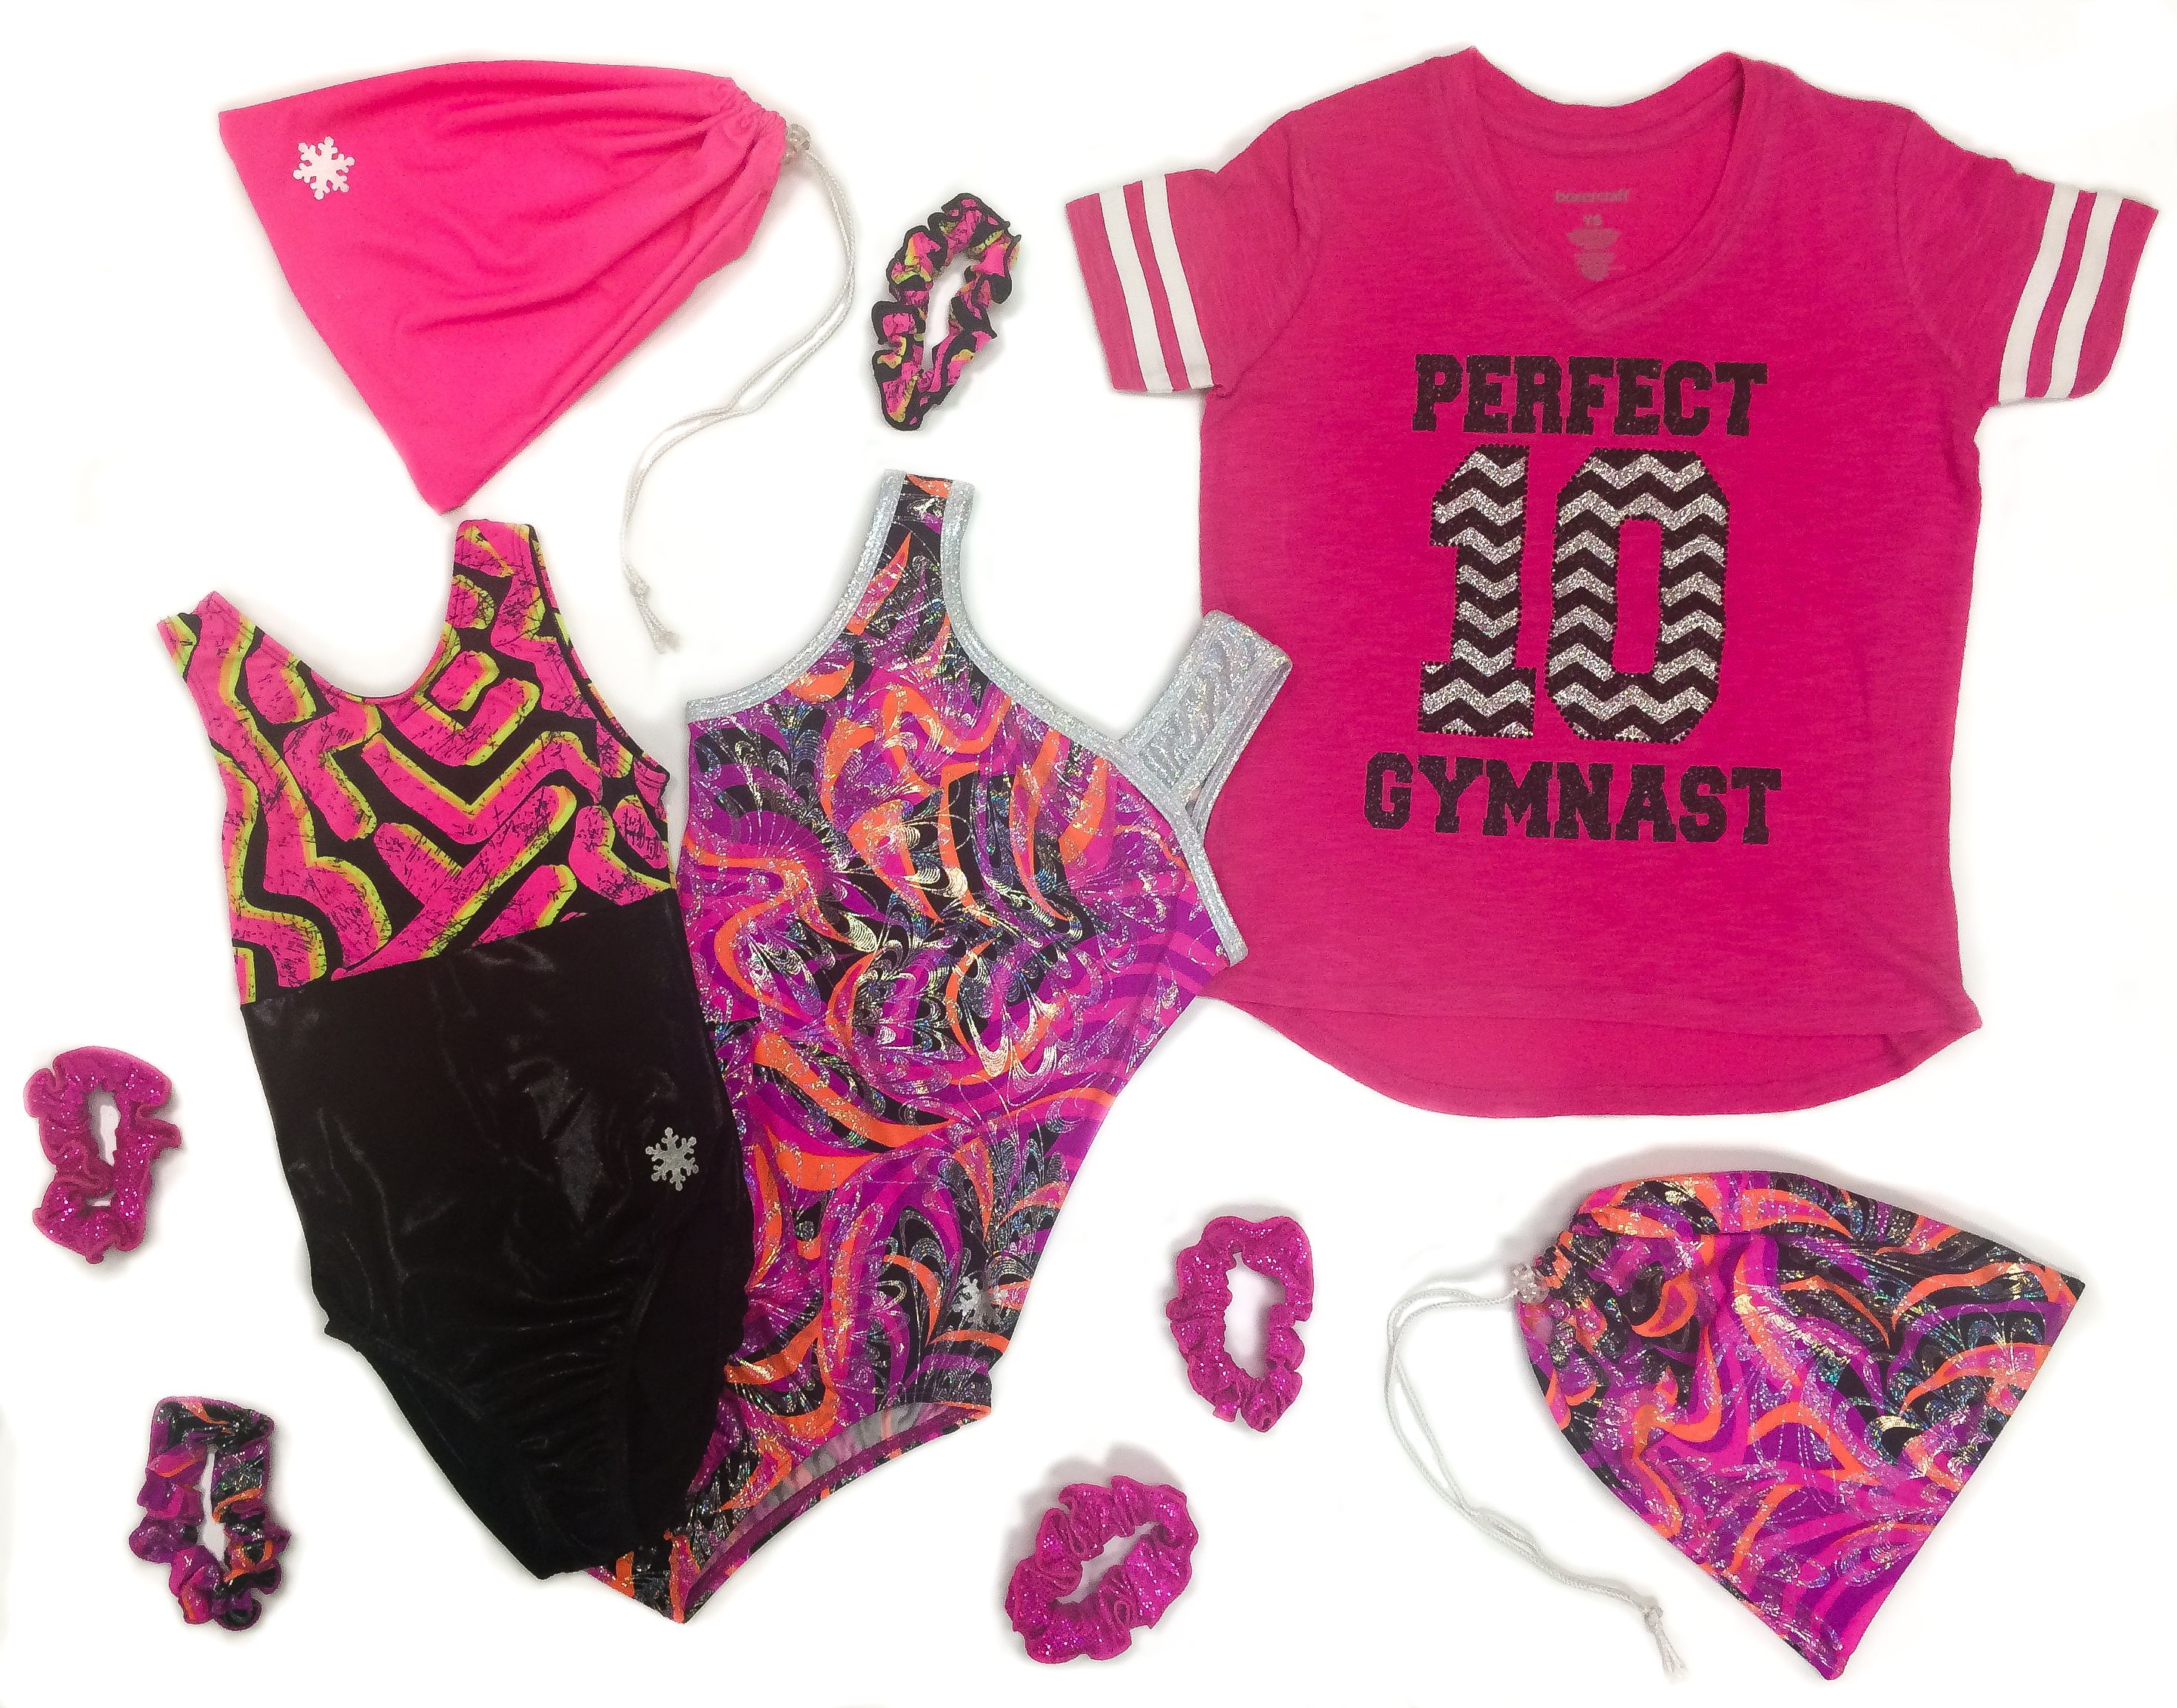 Love pink? We do too! That's why we put together this perfectly pink outfit for you Perfect 10 gymnast. Click to shop the look!